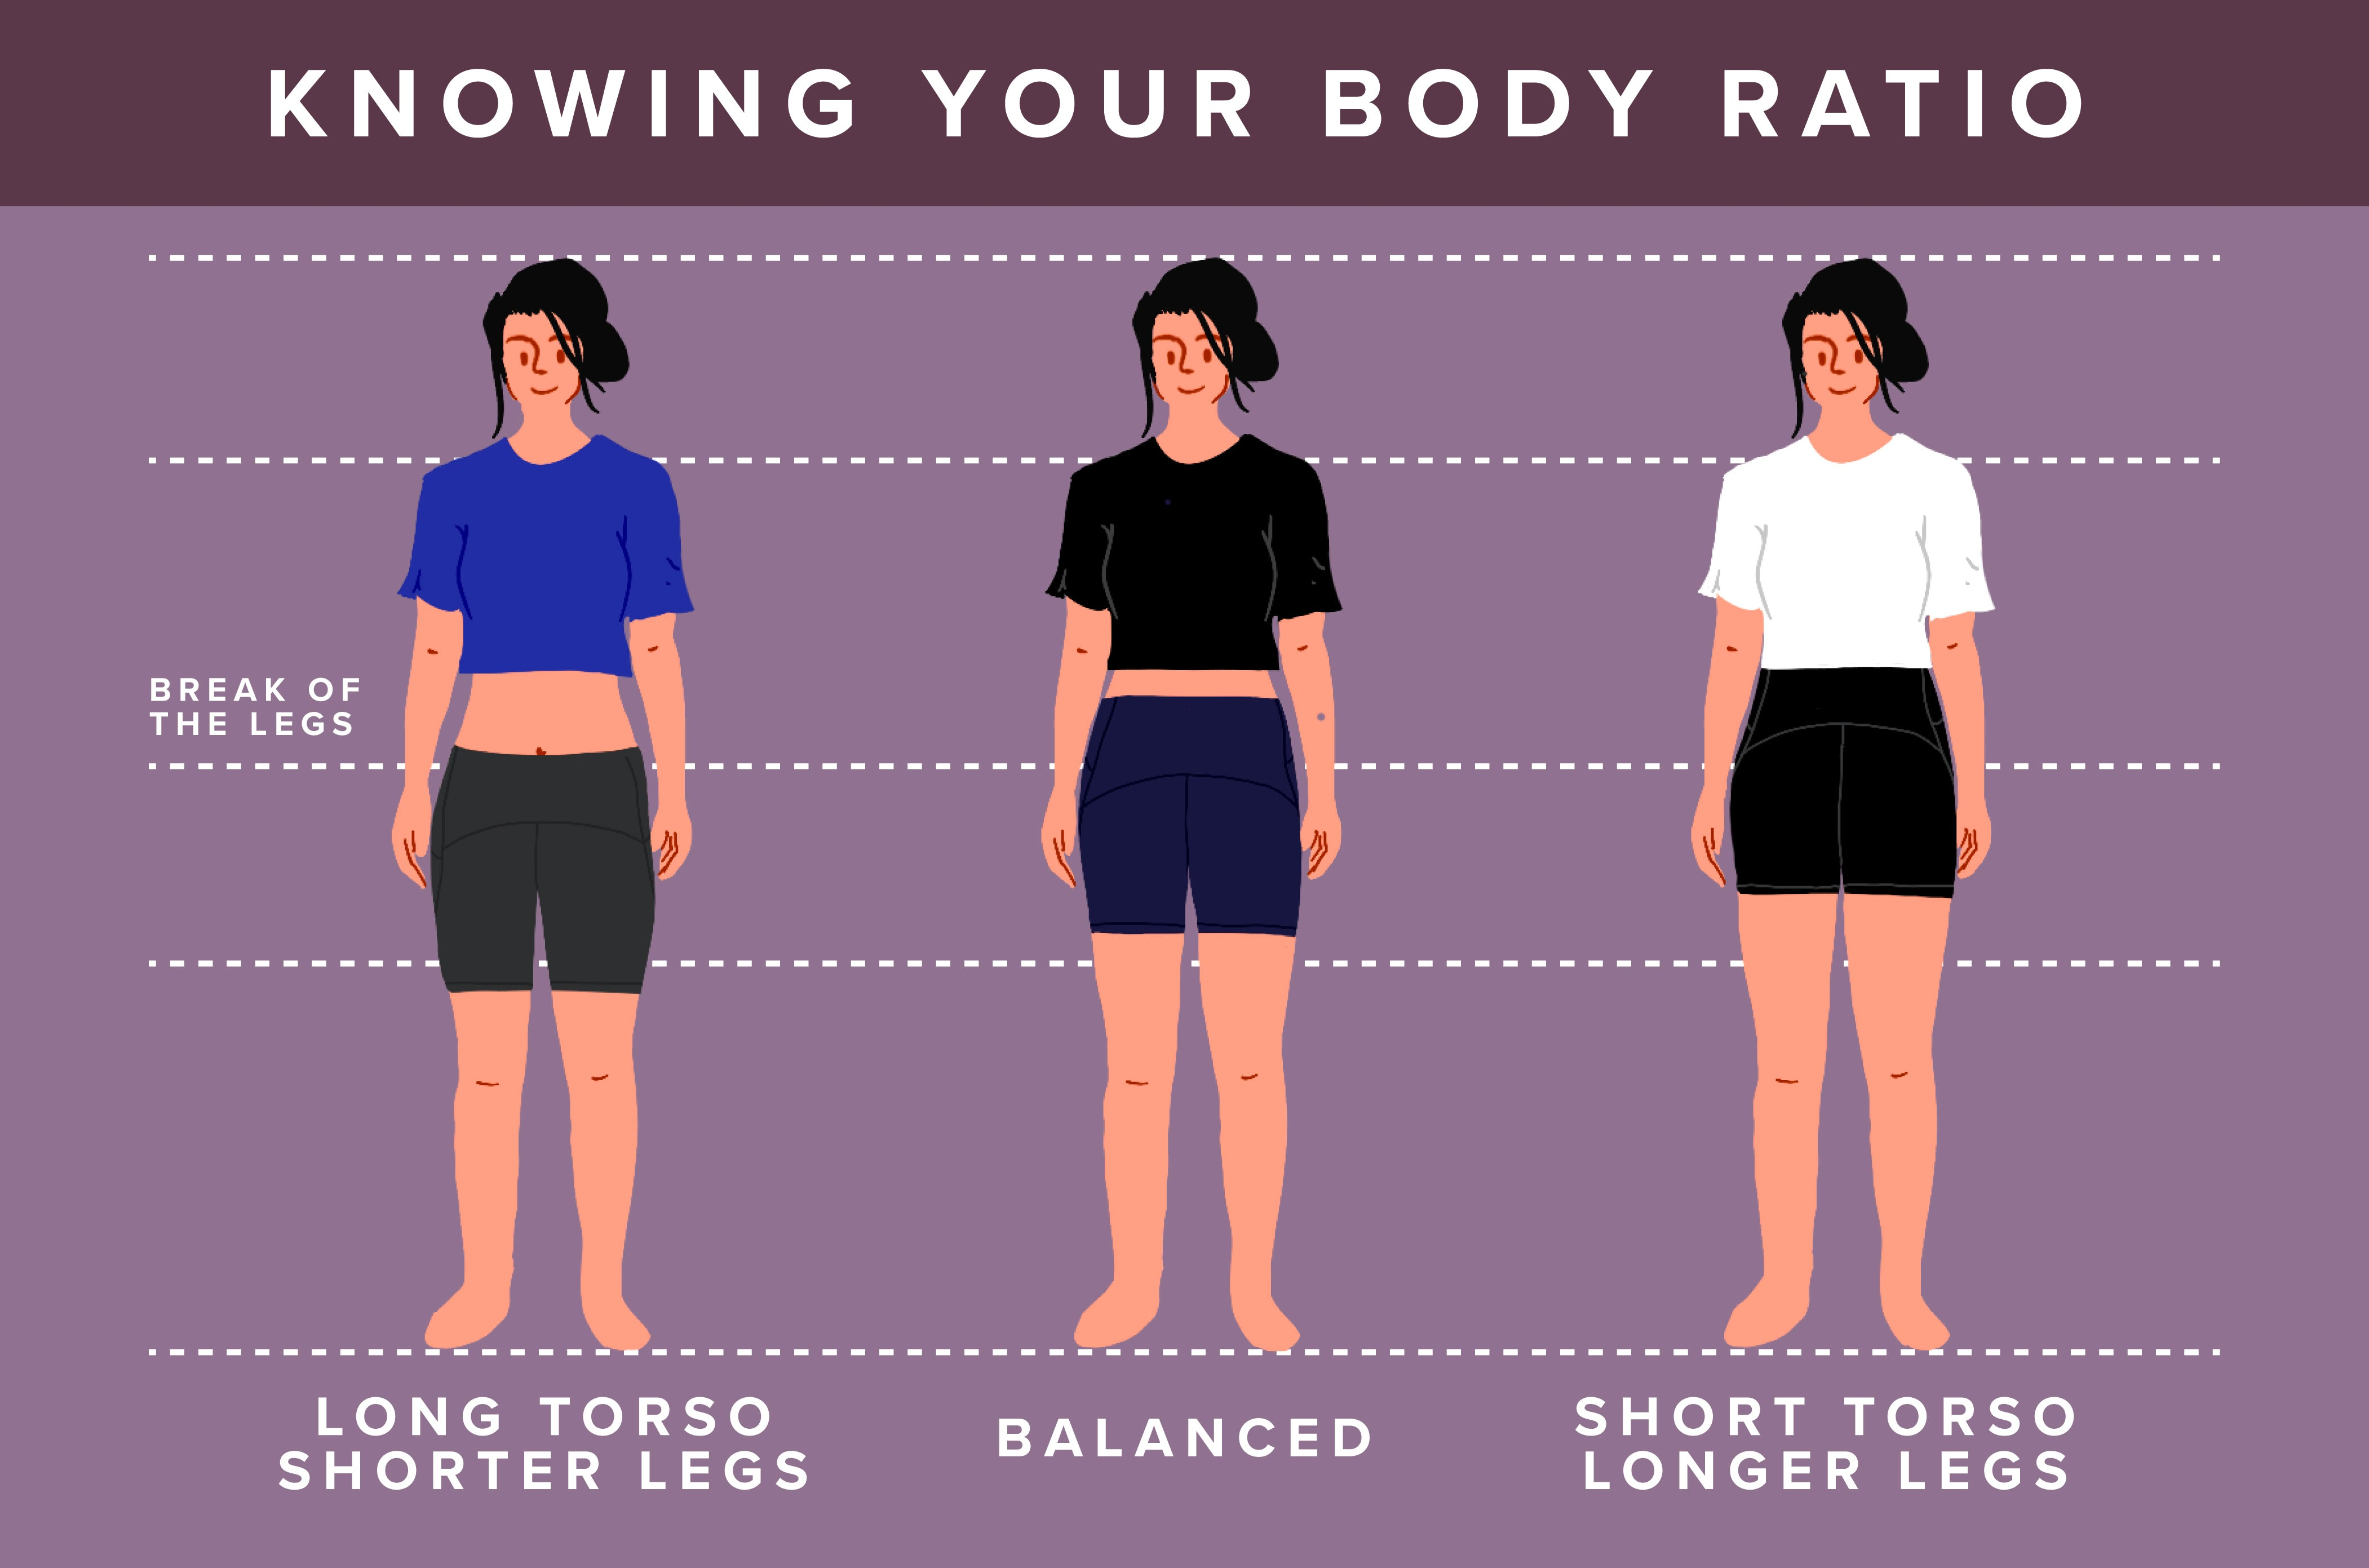 Knowing Your Body Ratio